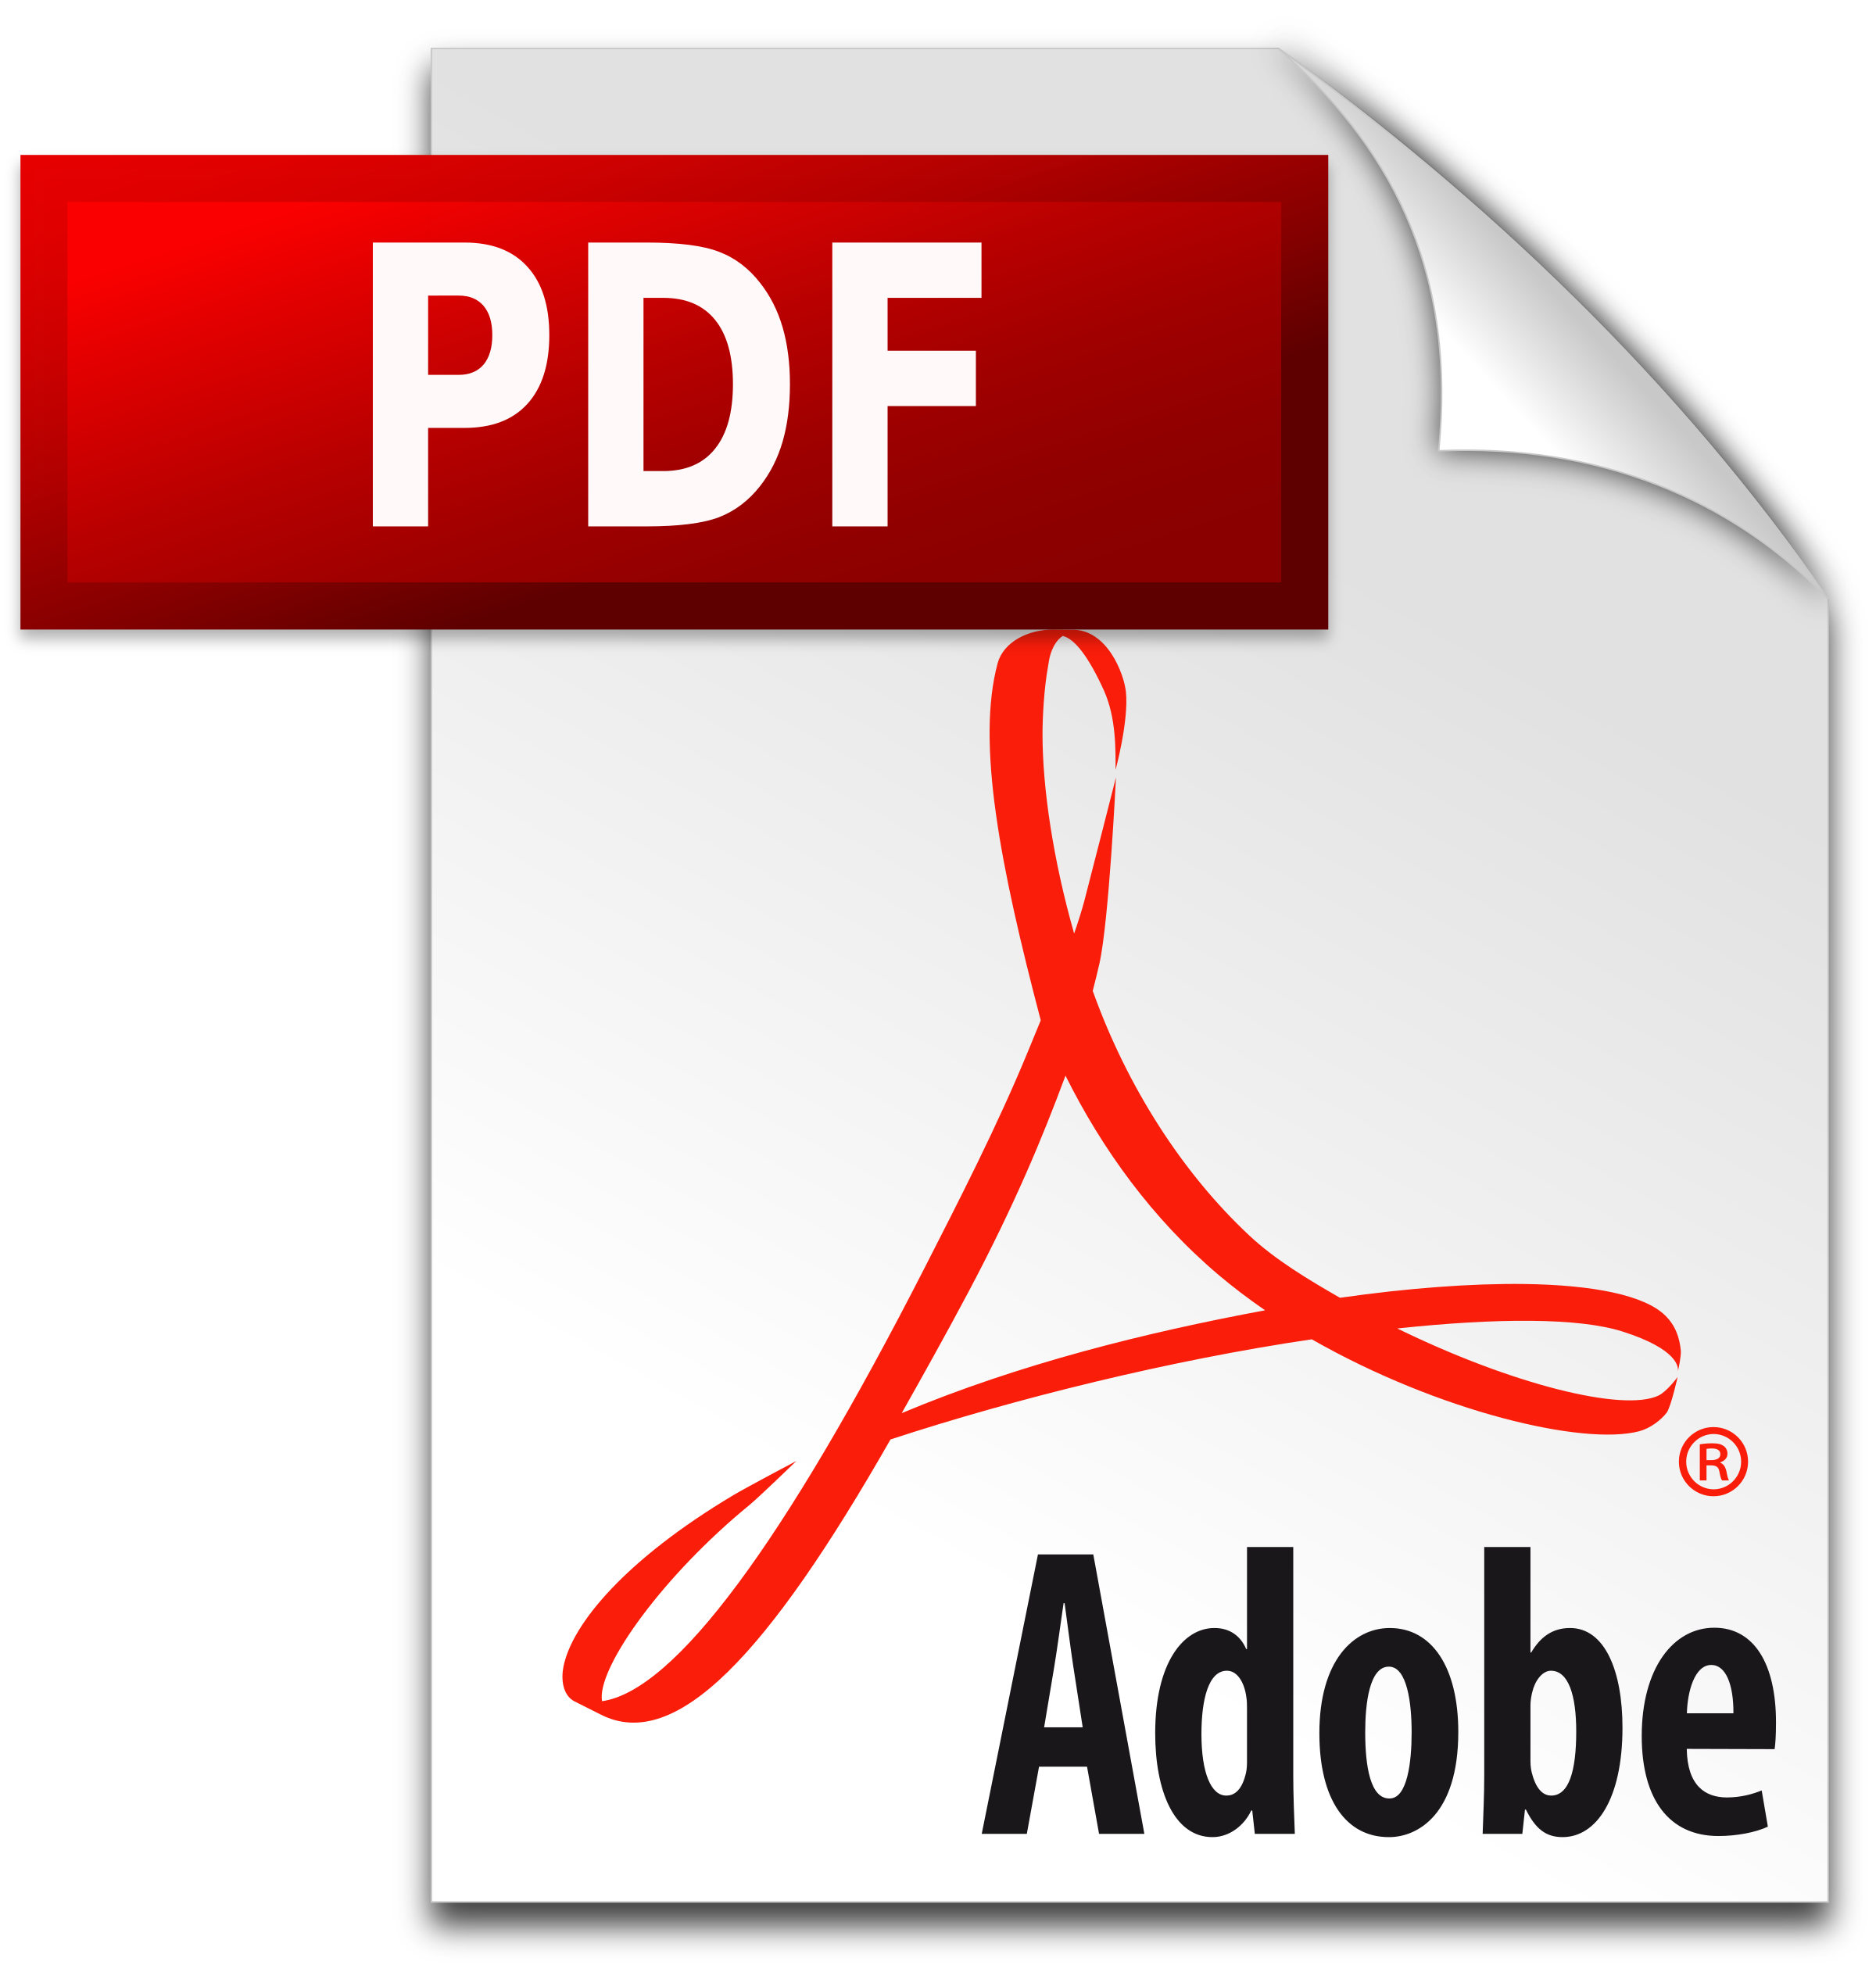 clip royalty free library PDF icon Logo PNG Transparent